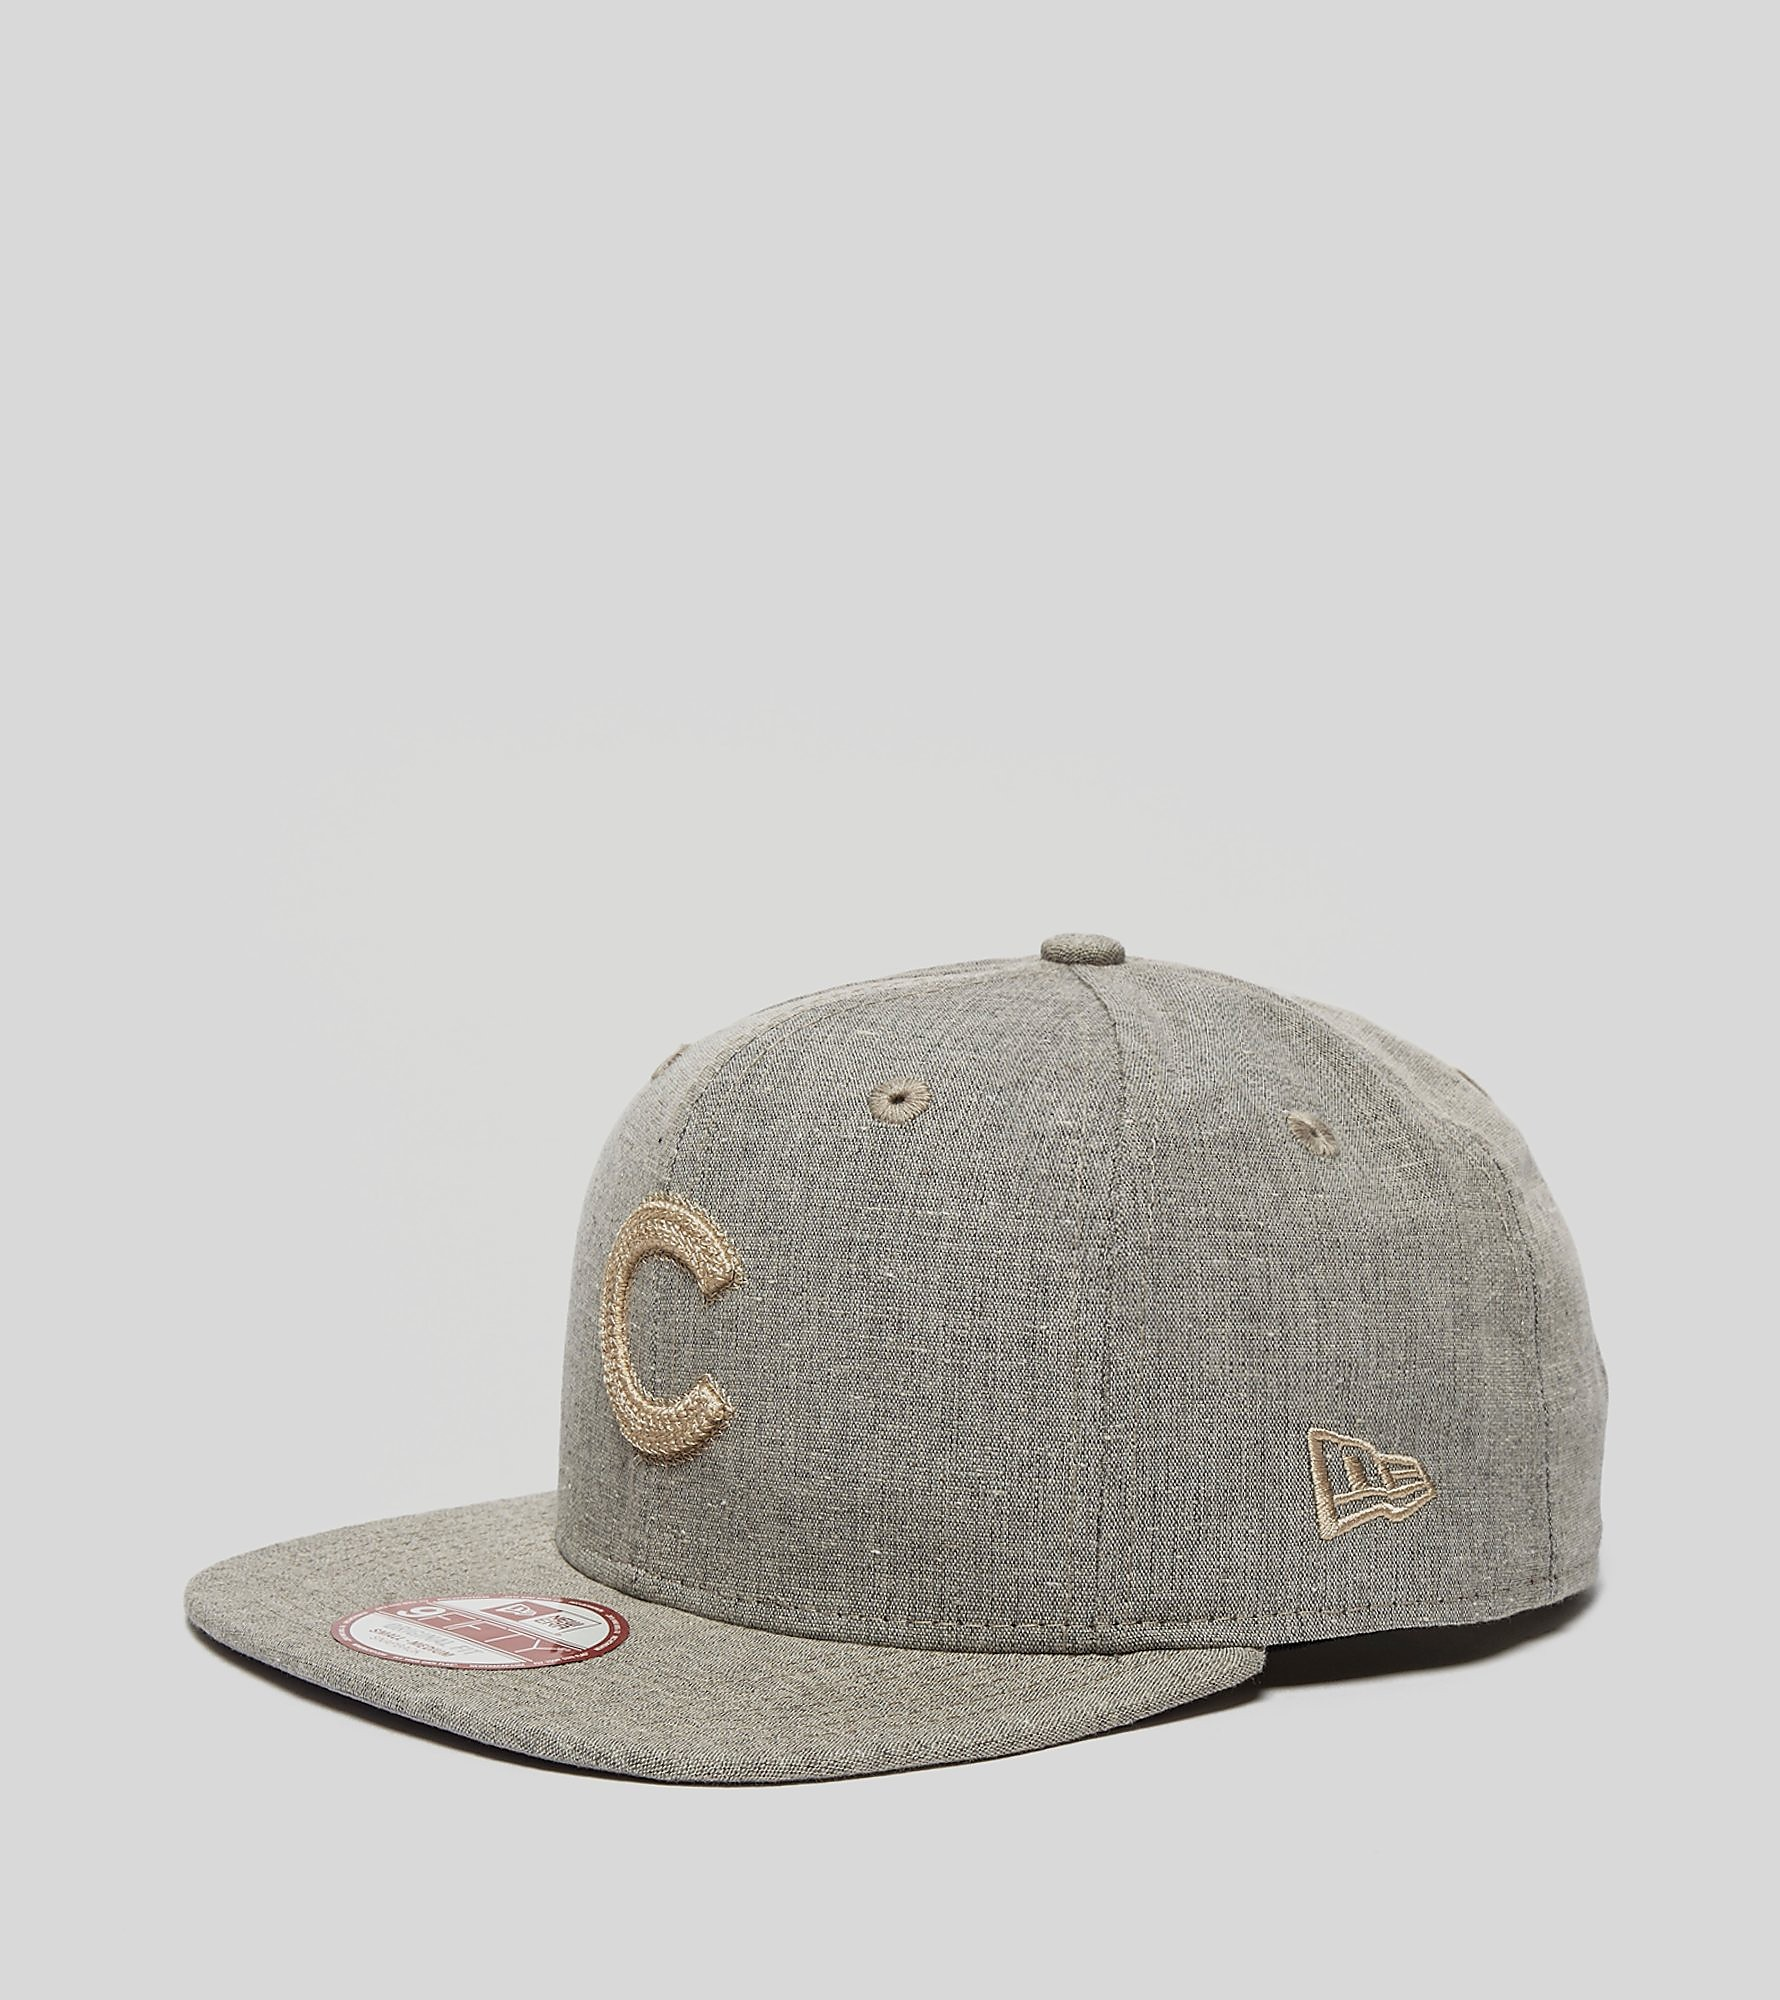 New Era 9FIFTY Chicago Cubs Snapback Cap - size? Exclusive